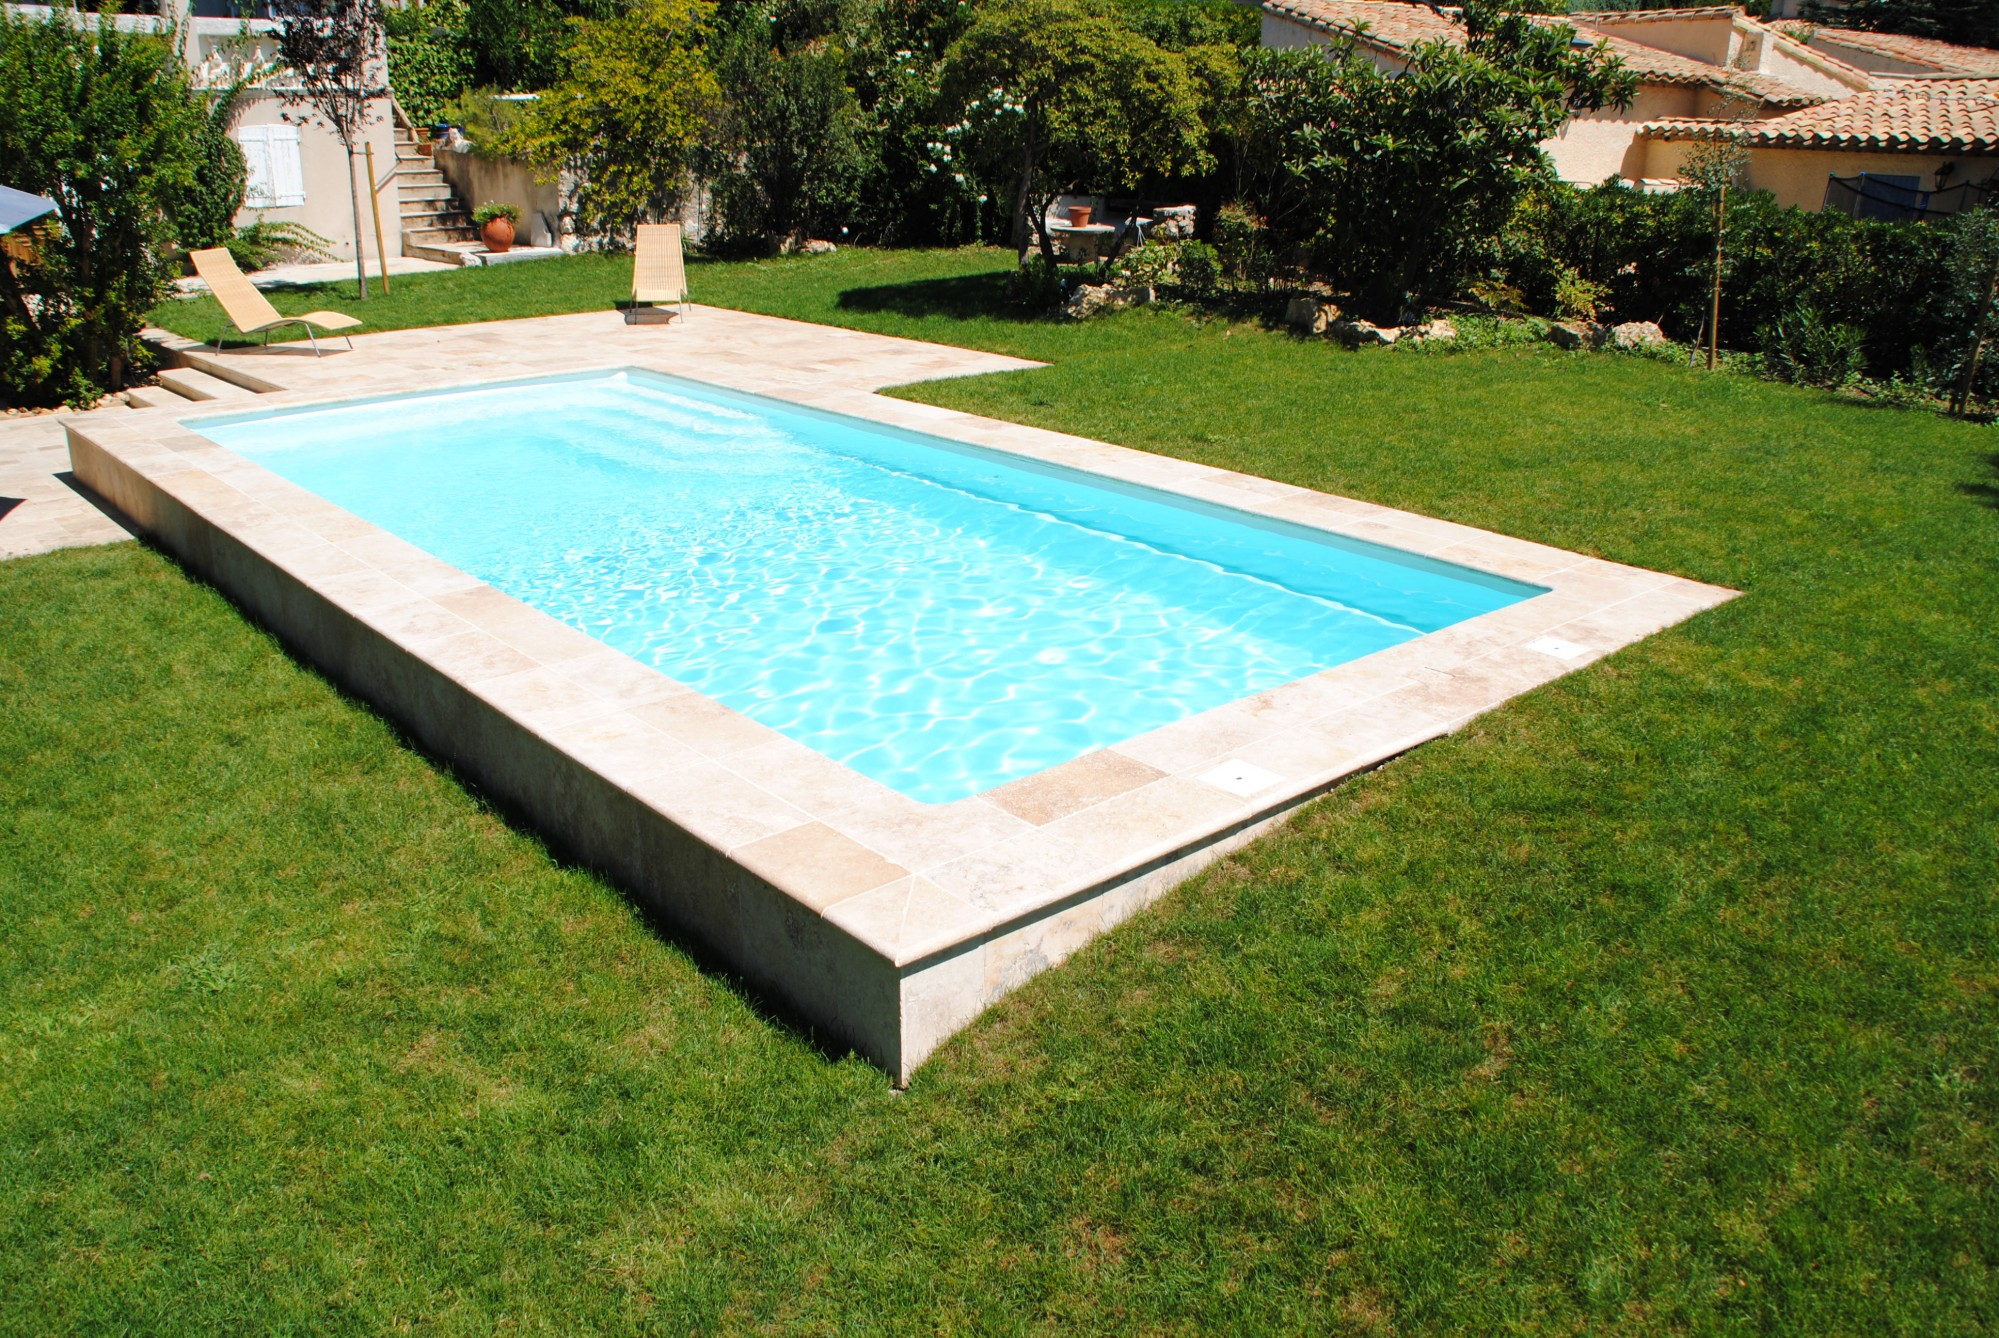 Piscines coque polyester pas chere piscine polyester for Coque piscine polyester